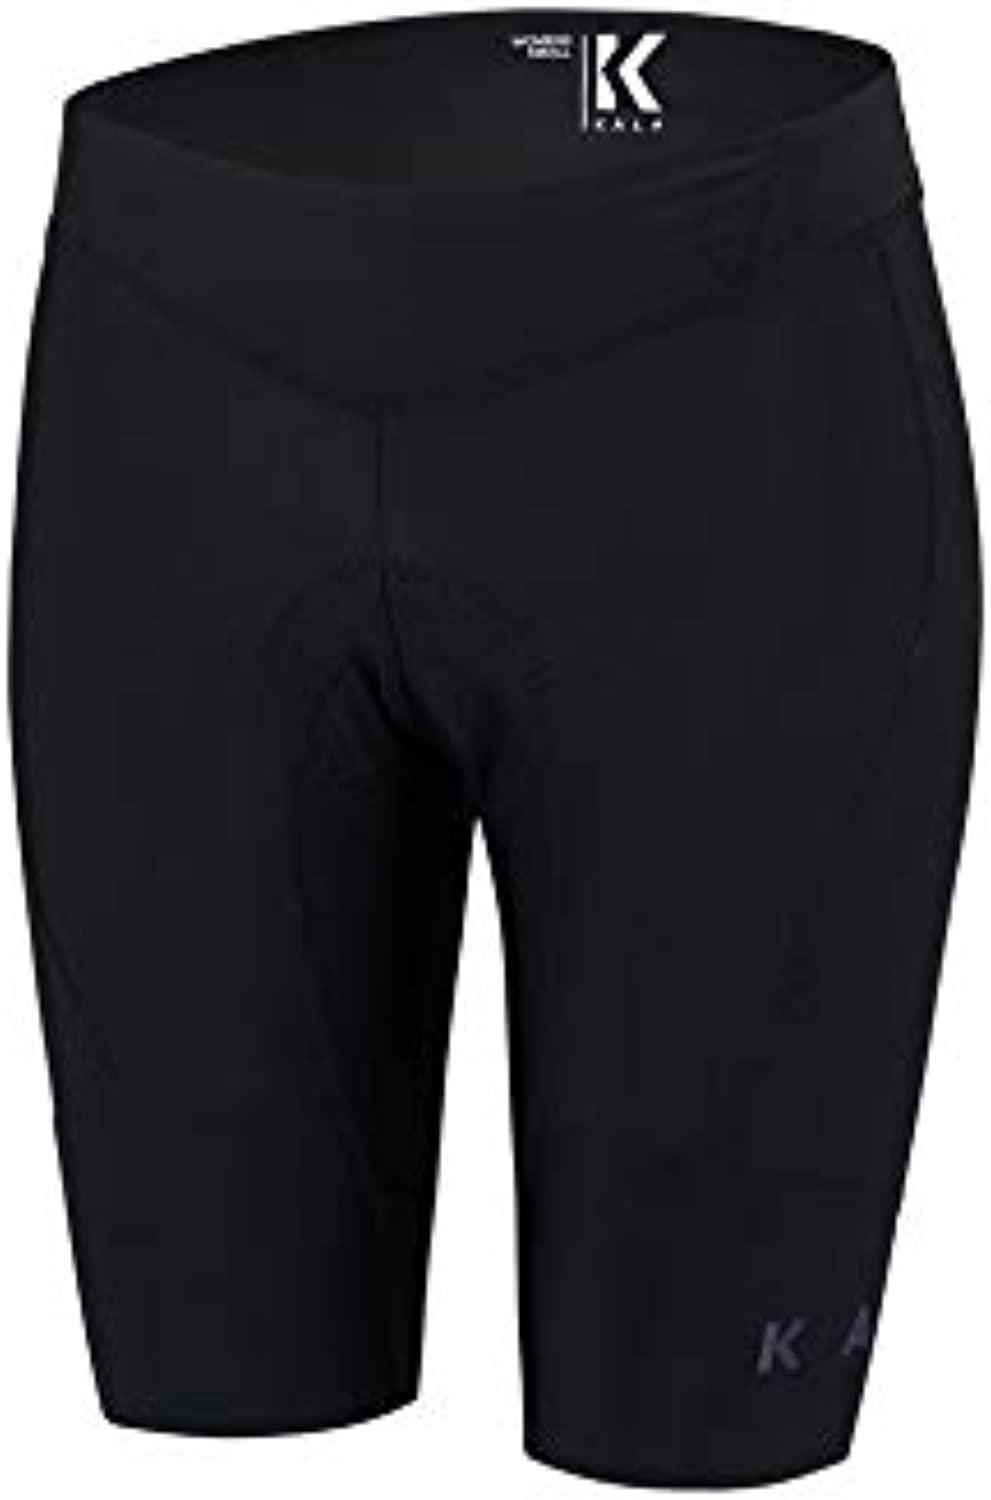 KALF Flux Women Waist Shorts Sport Cycling Biking Lightweight Comfort Leggings